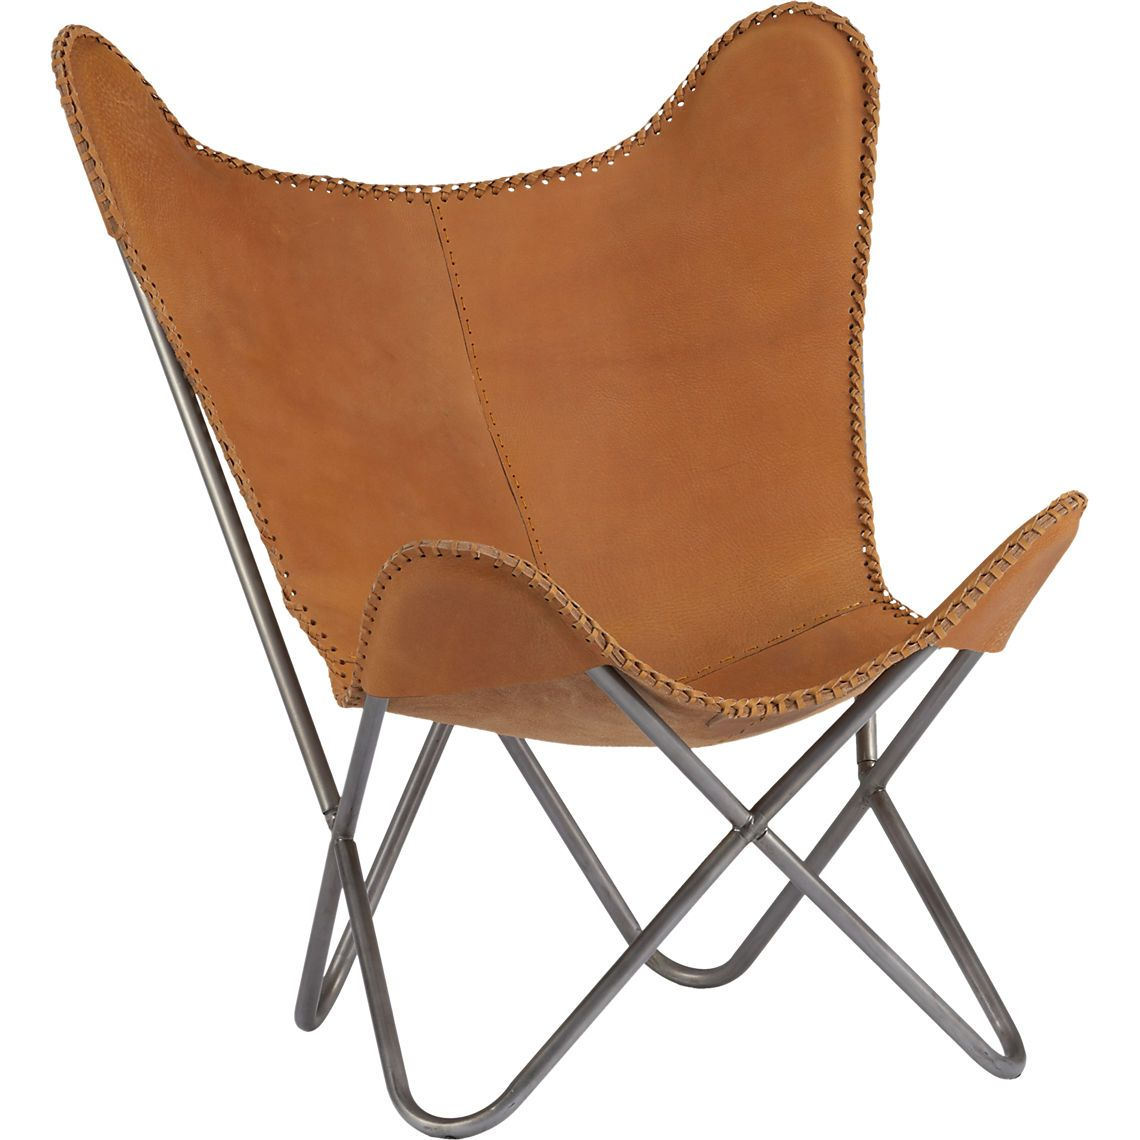 1938 leather butterfly chair in chairs